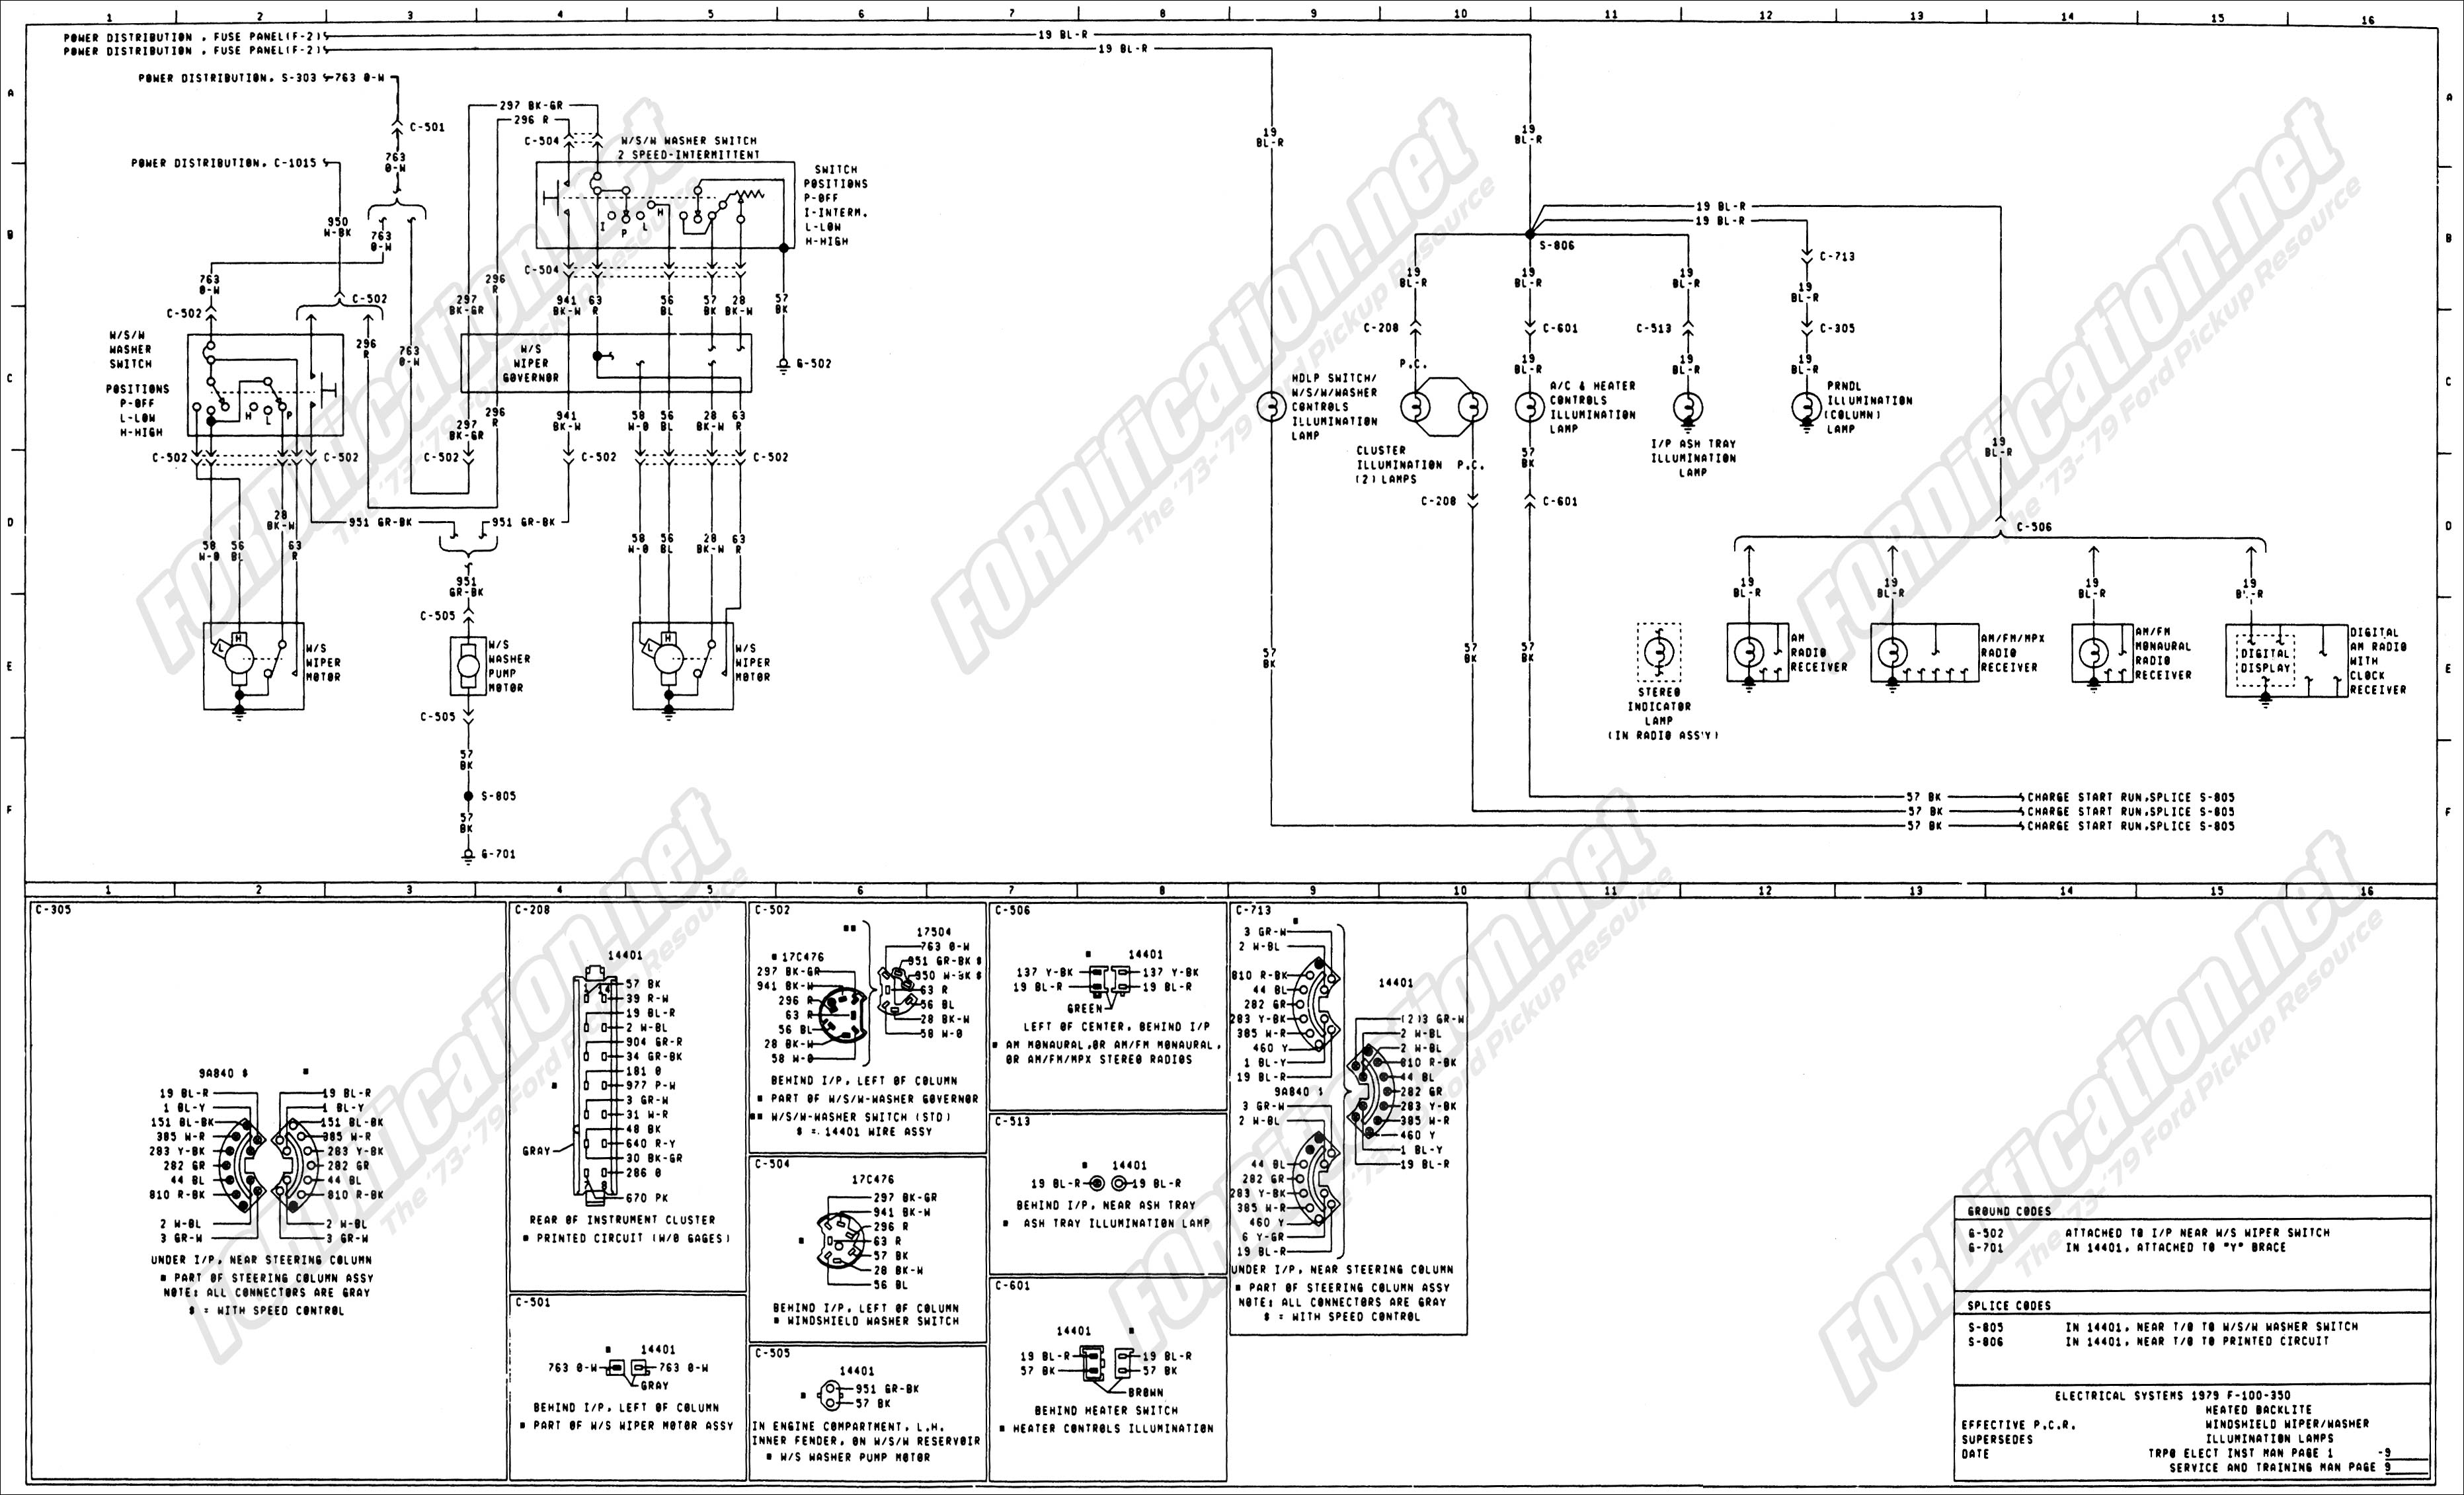 wiring_79master_9of9 1973 1979 ford truck wiring diagrams & schematics fordification net 1999 Ford F-250 Wiring Diagram at mifinder.co